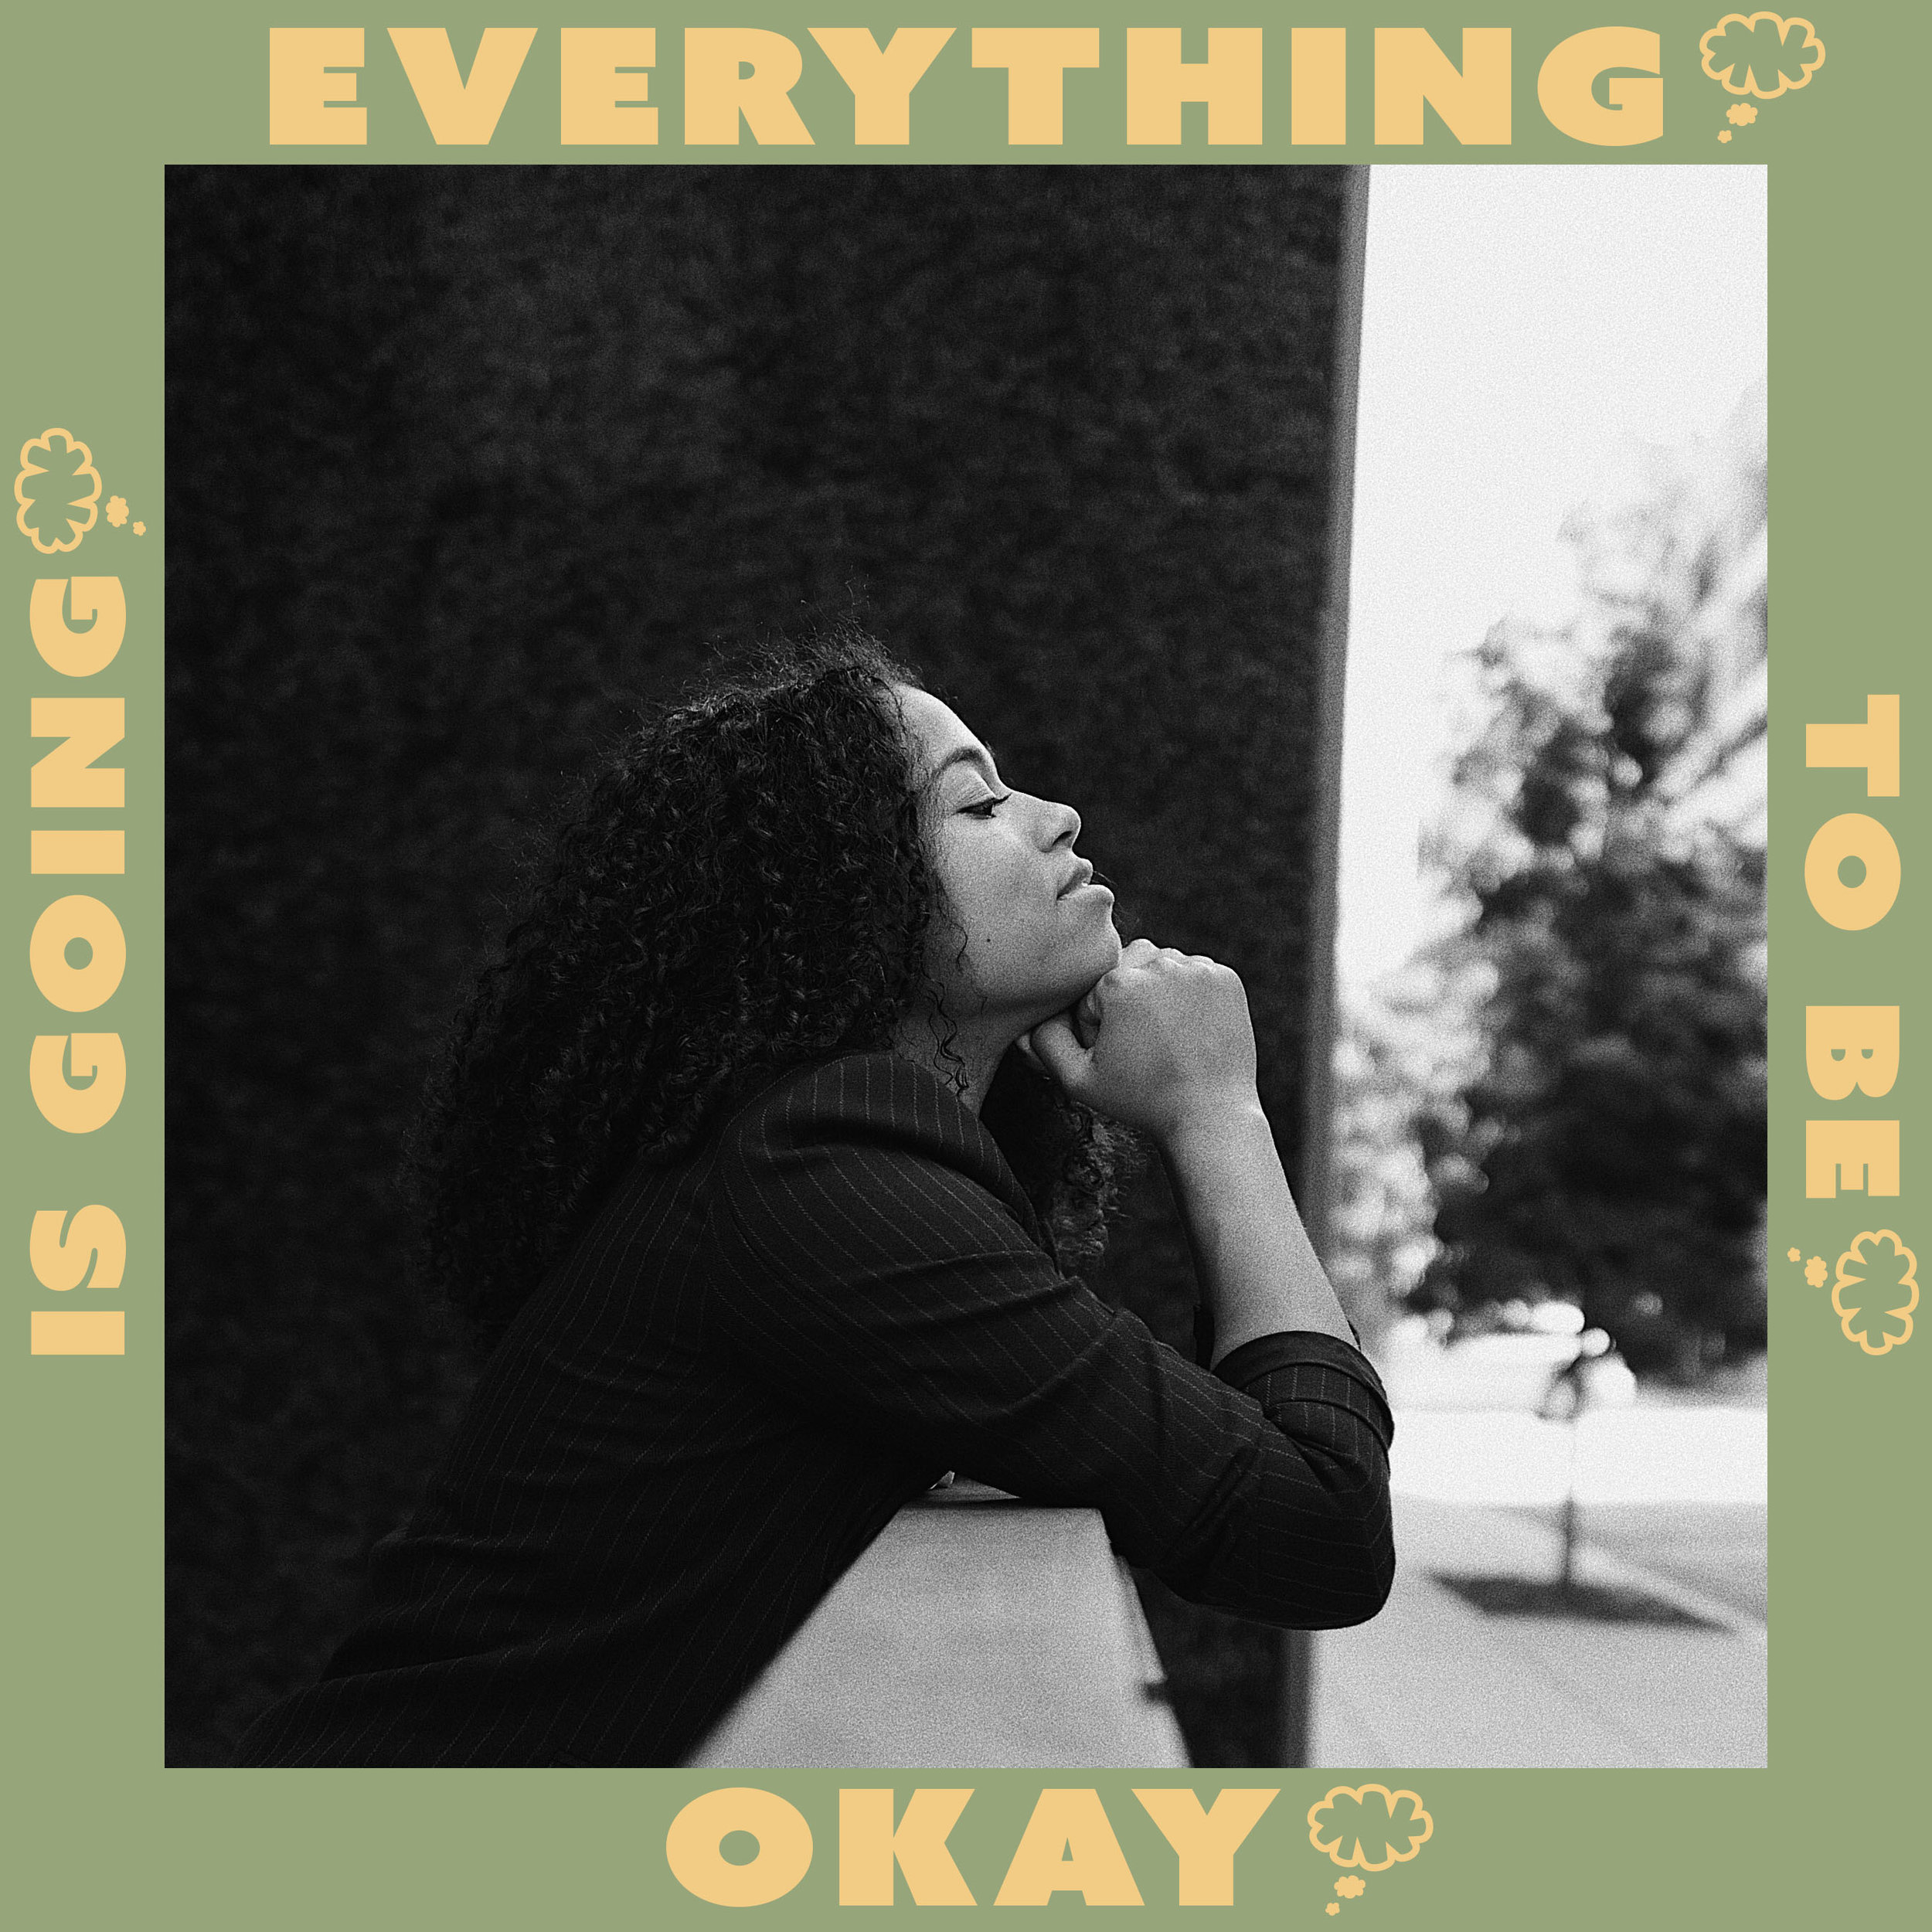 EverythingIsGoingToBeOkay_CoverArt.jpg